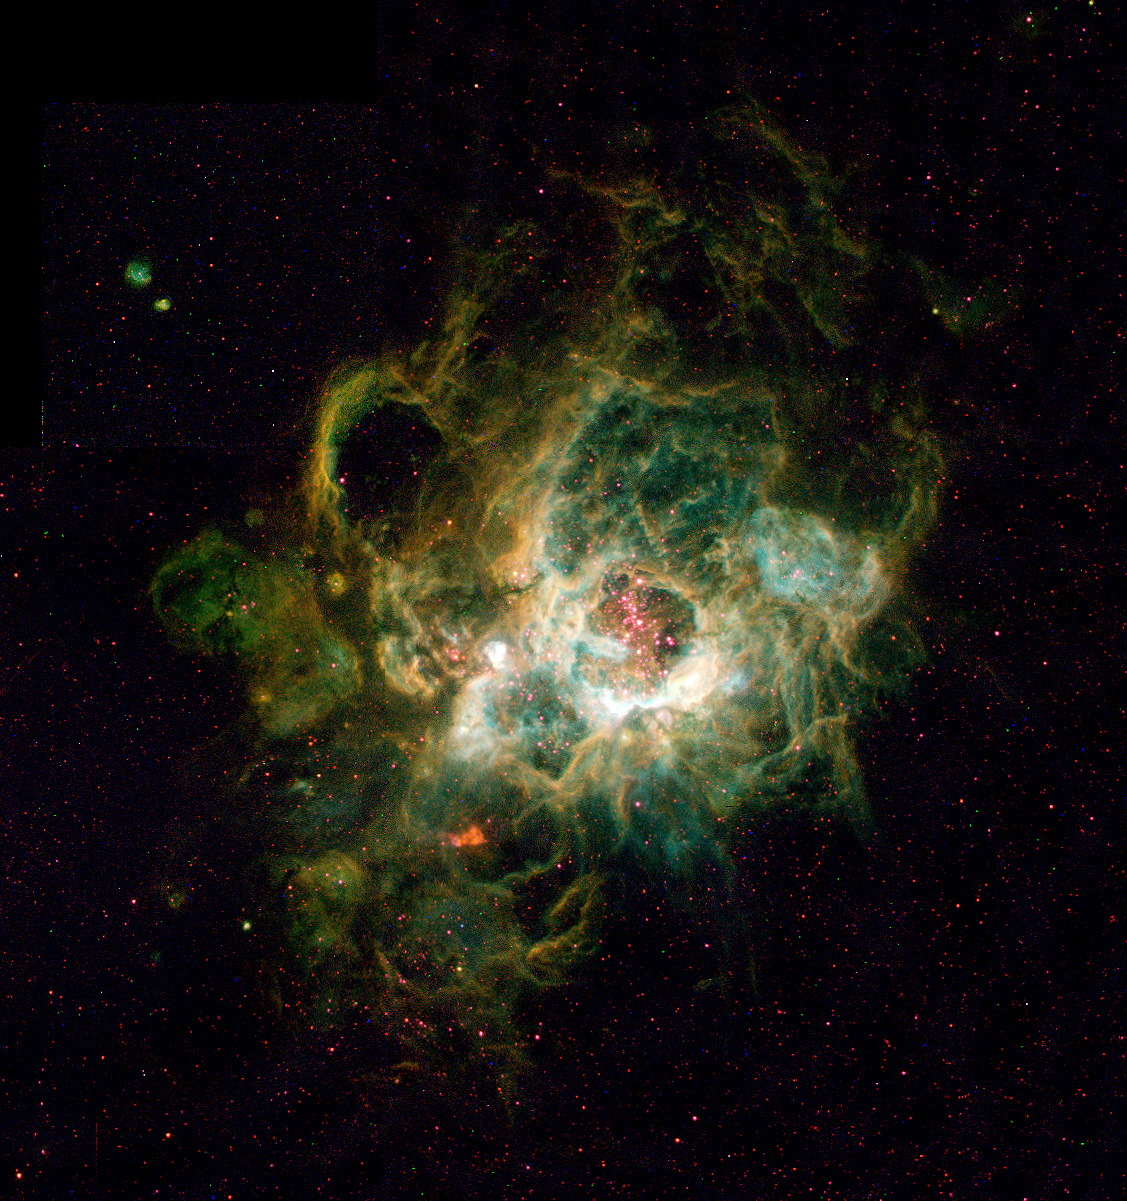 NGC 604 in Galaxy M33 NGC 604 in Galaxy M33   This is a Hubble Space Telescope image of a vast nebula called NGC 604, which lies in the neighboring spiral galaxy M33, located 2.7 million light-years away in the constellation Triangulum.  Image Credit: Hui Yang (University of Illinois) and NASA/ESA